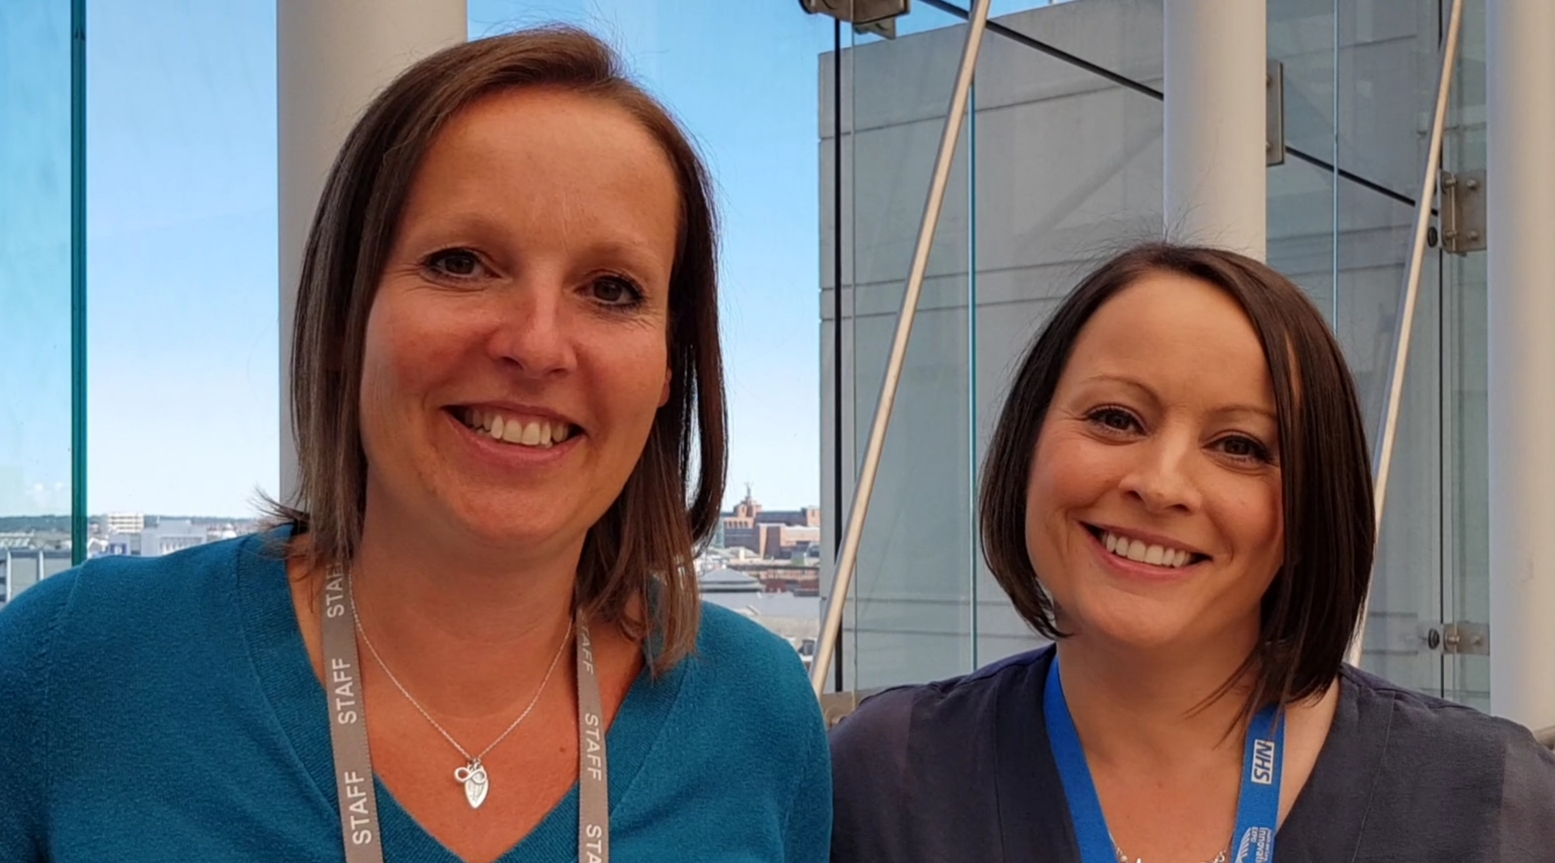 Head and shoulders of Jackie Tatterton and Hazel Jones of the NHS Digital Apps and Wearables programme